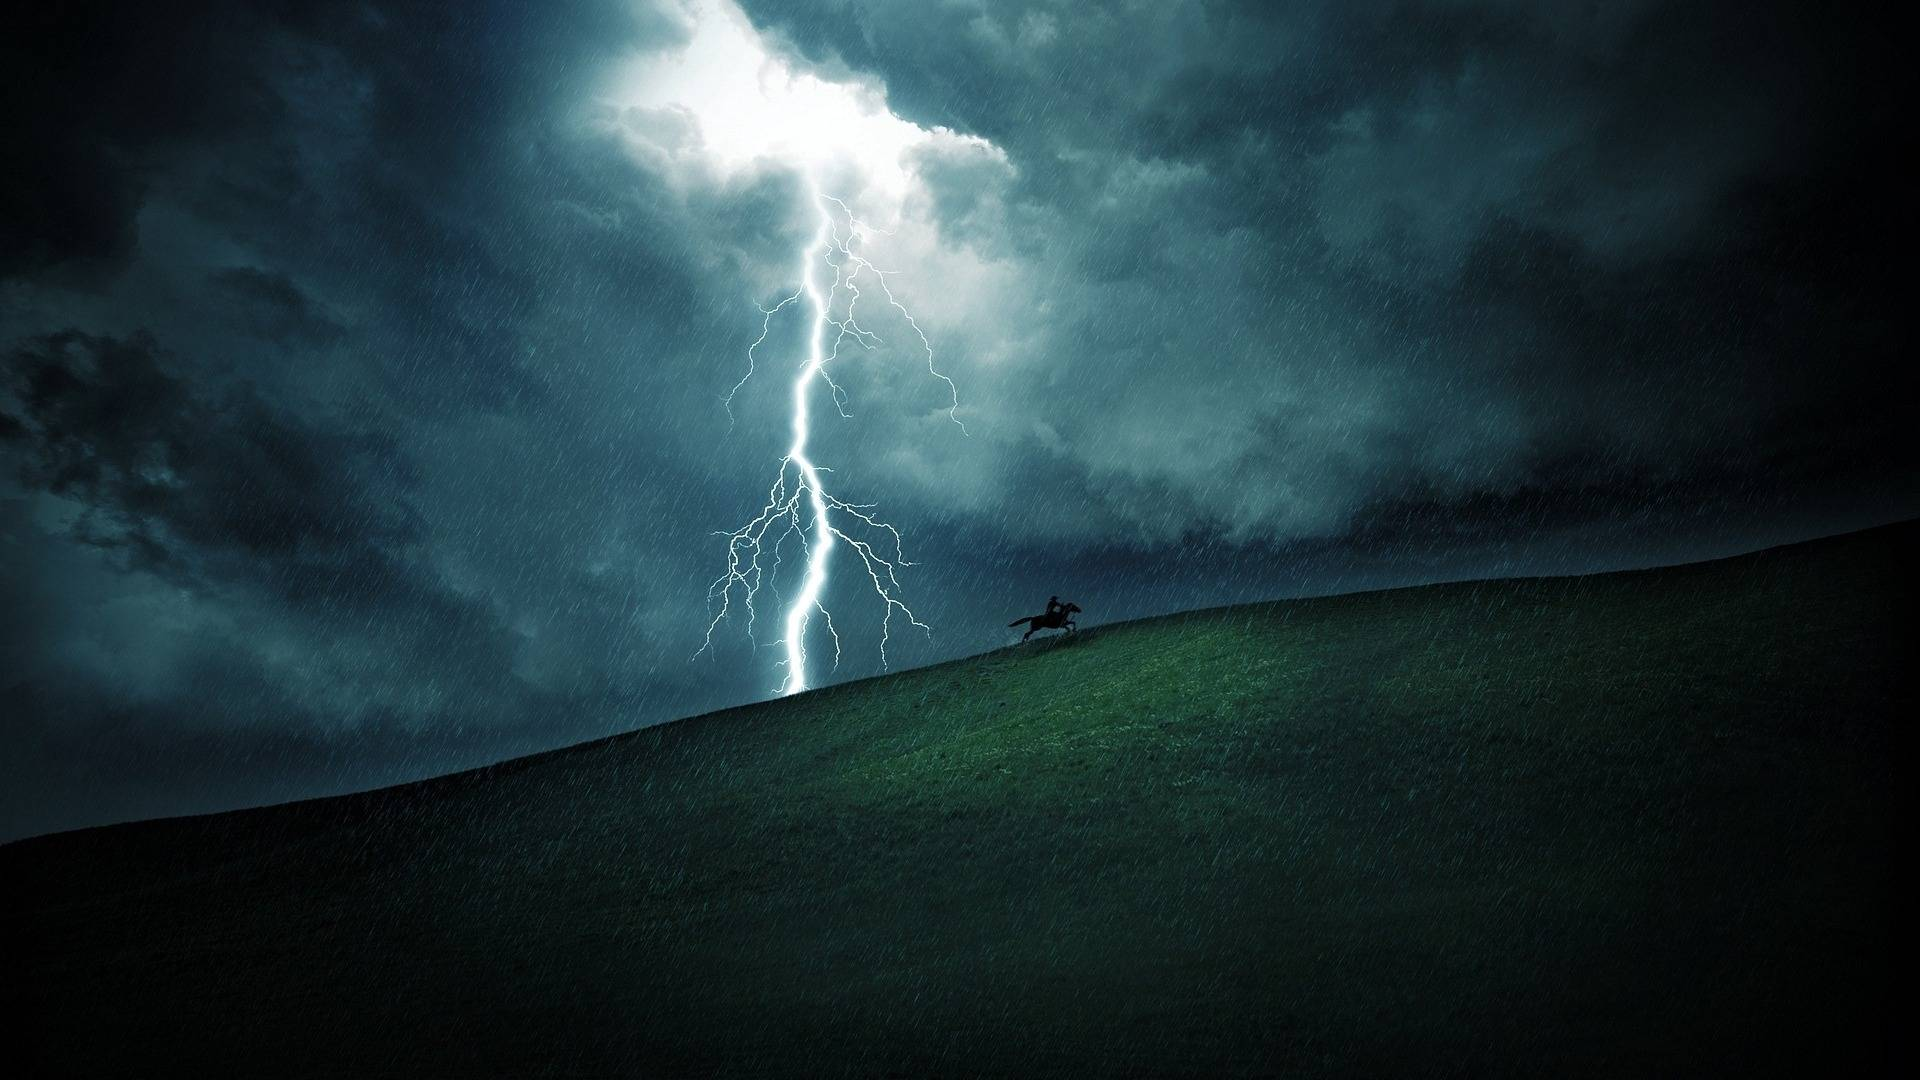 Free Thunderstorm Wallpapers Wallpaper Cave